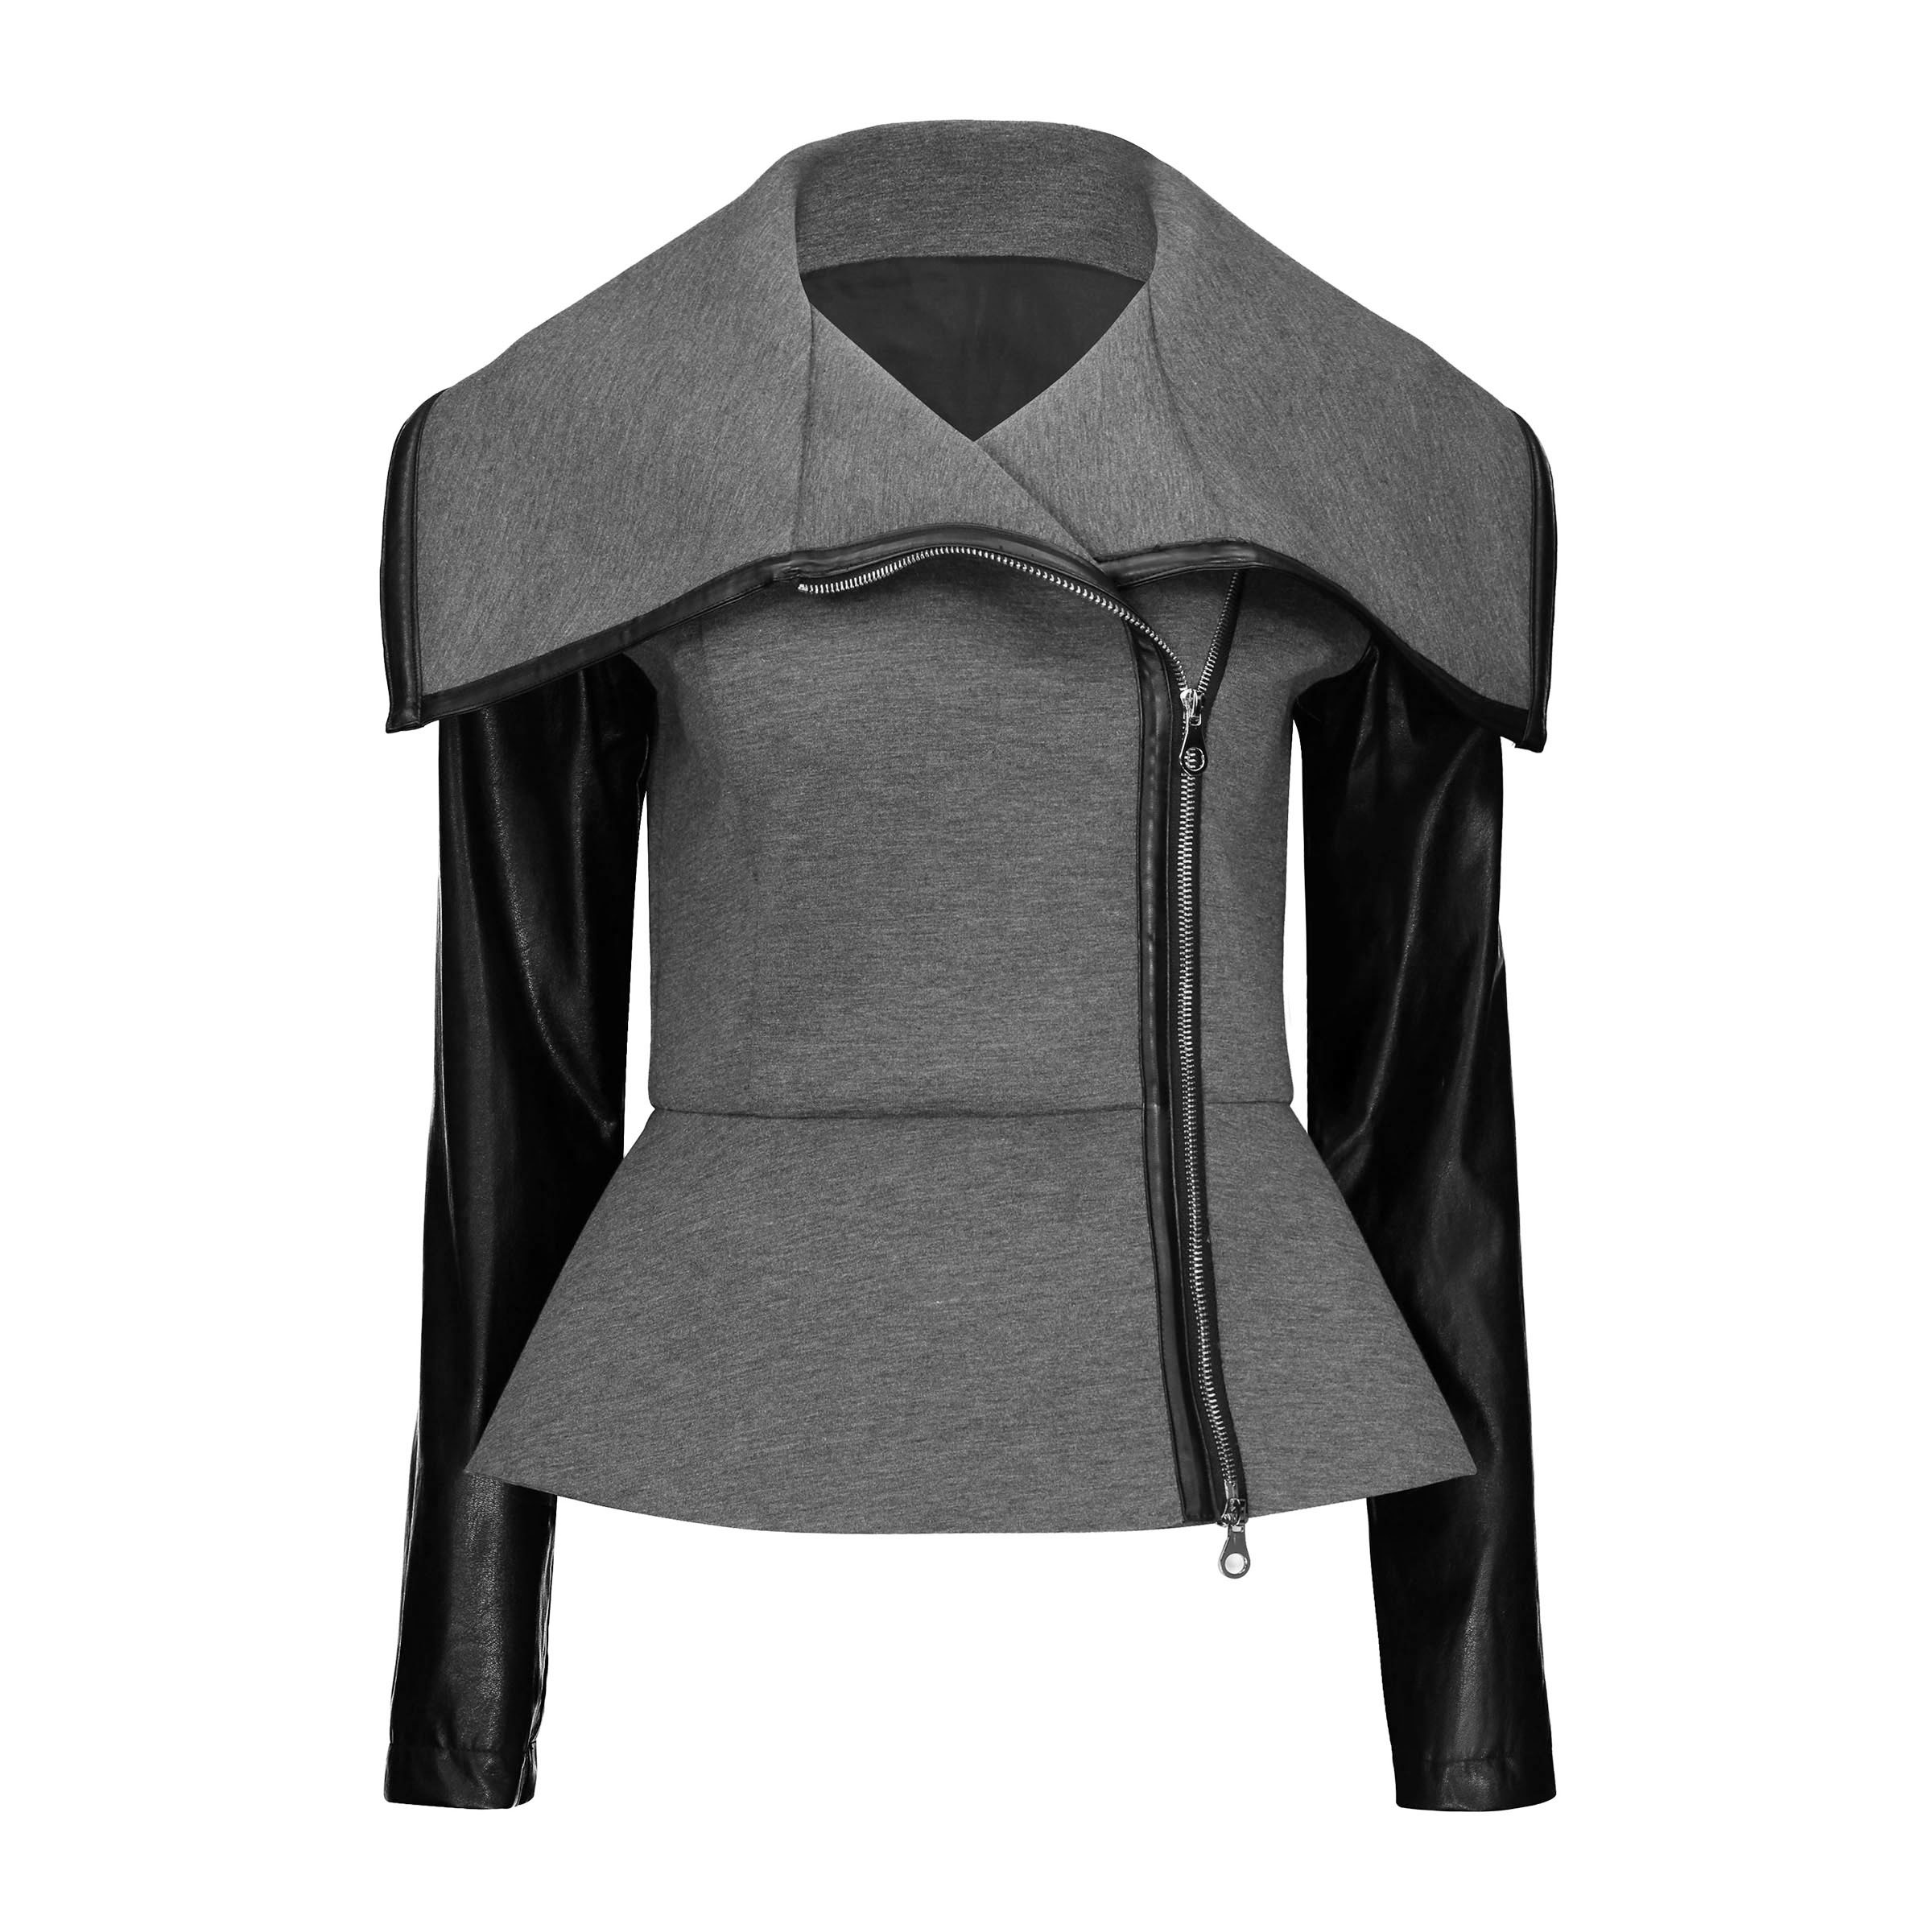 Goth Casual Jacket Coat Women Winter 2018 PU Leather Sleeve High Street Outerwear Stylish Skinny Simple Office Ladies Autumn Top